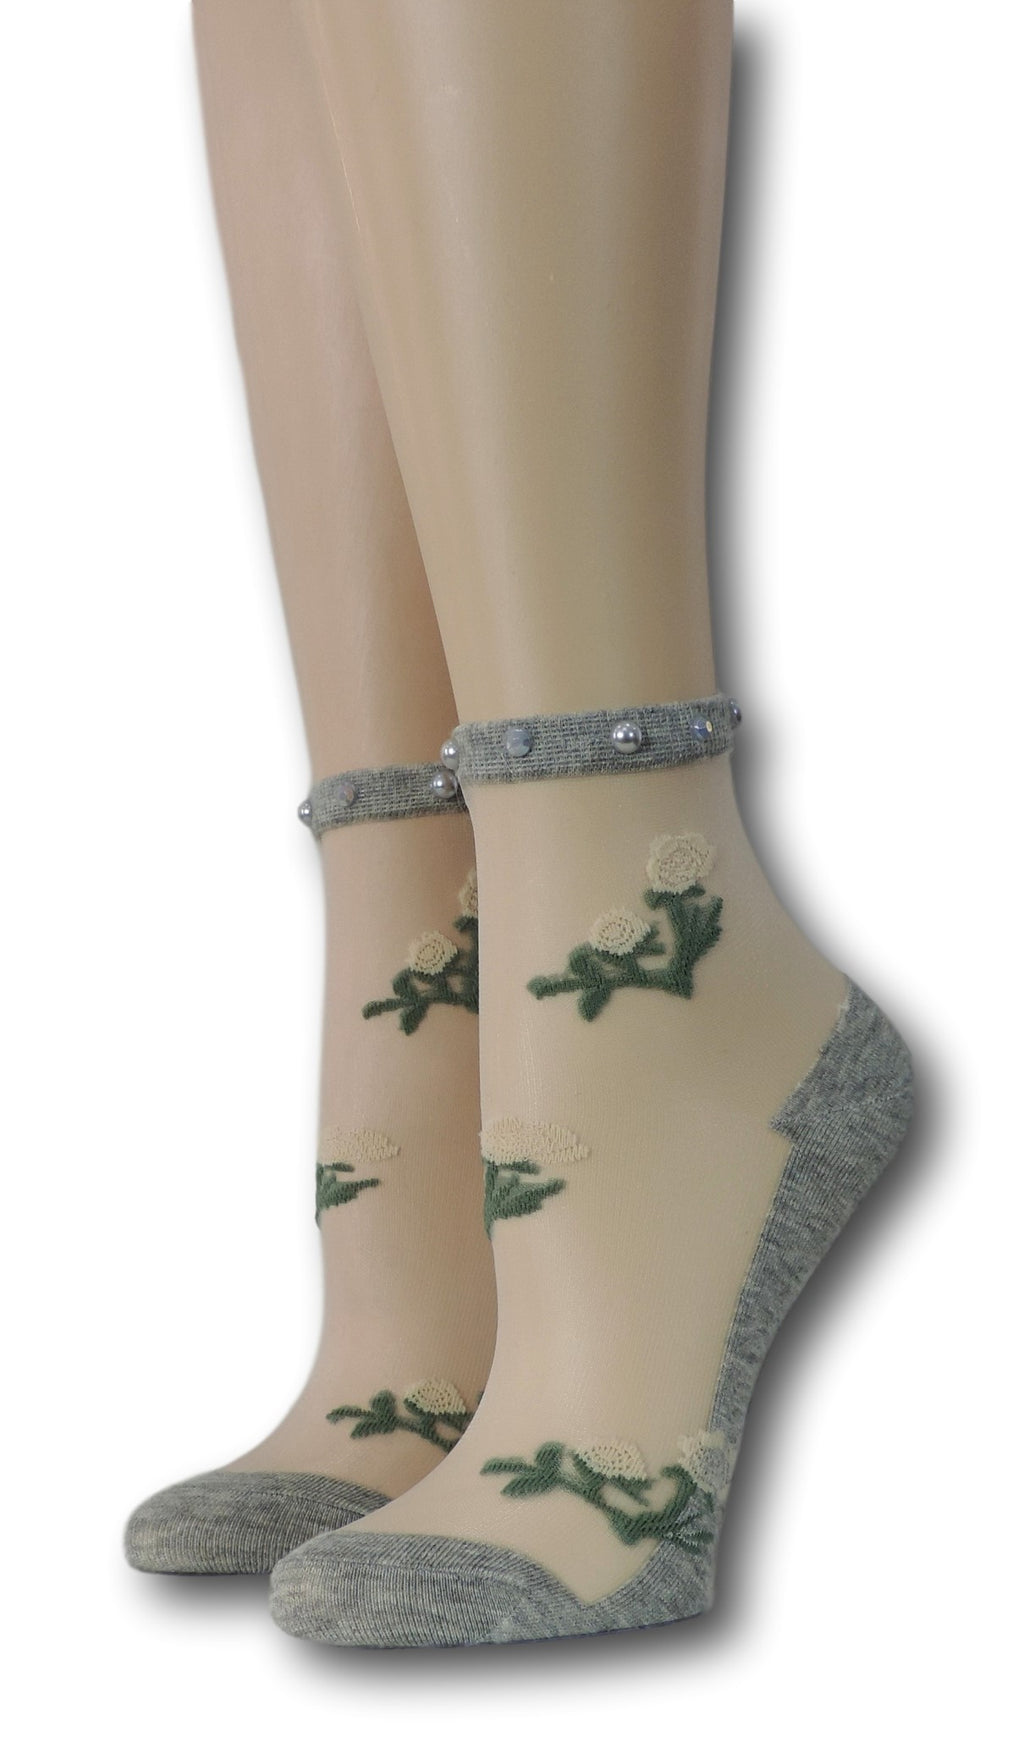 Grey Floret Sheer Socks with beads